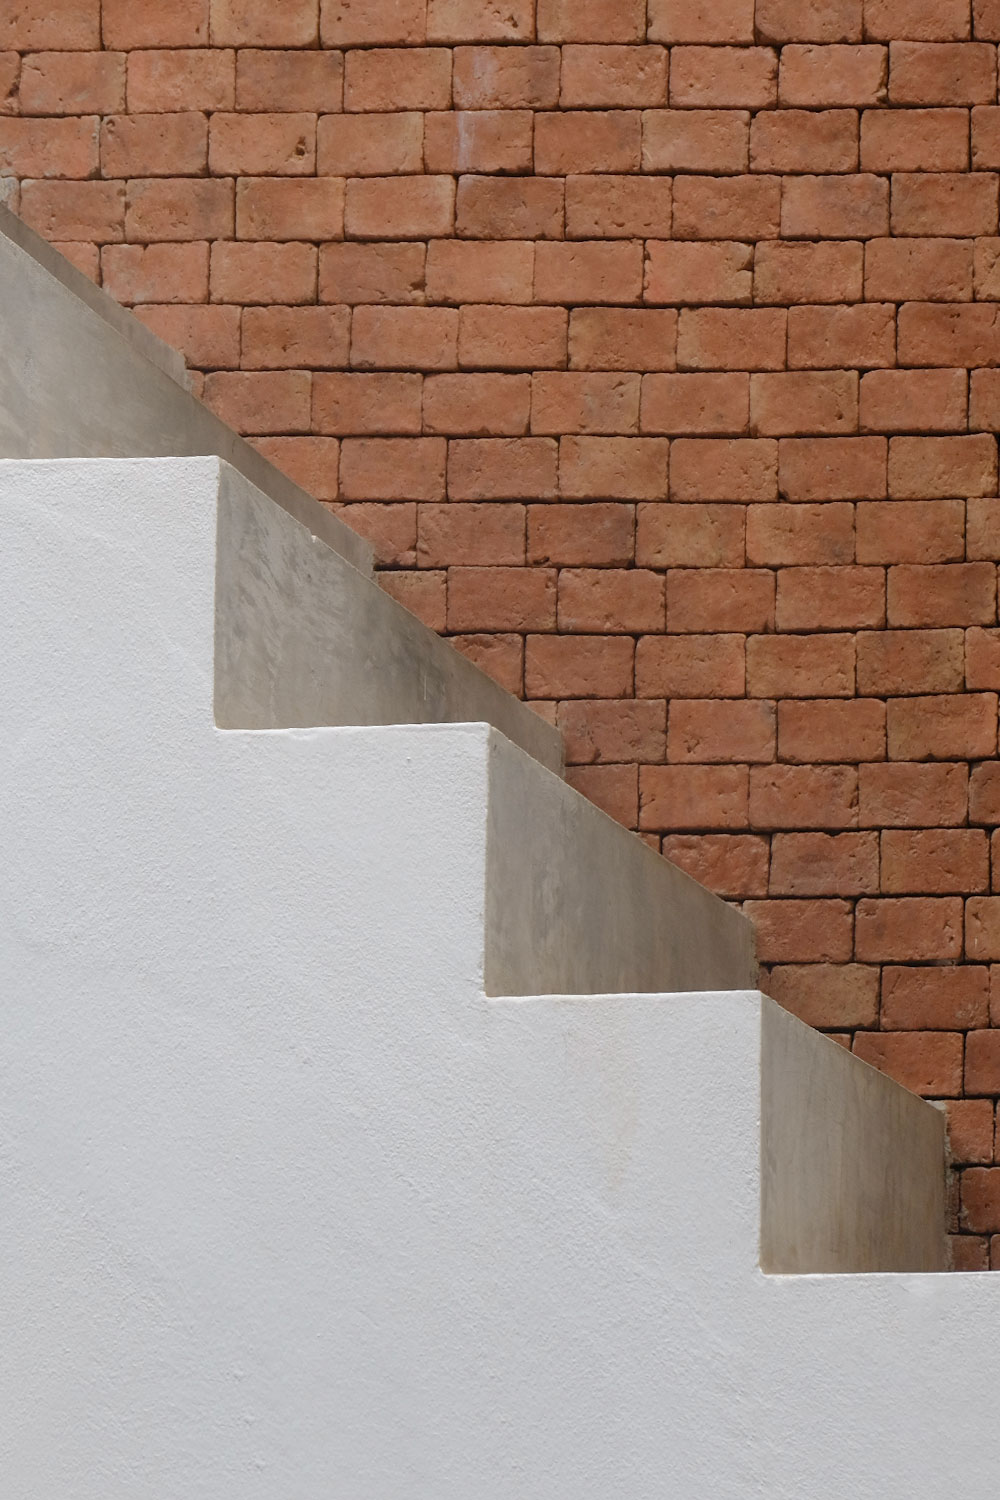 side view of concrete stairs with a brick wall